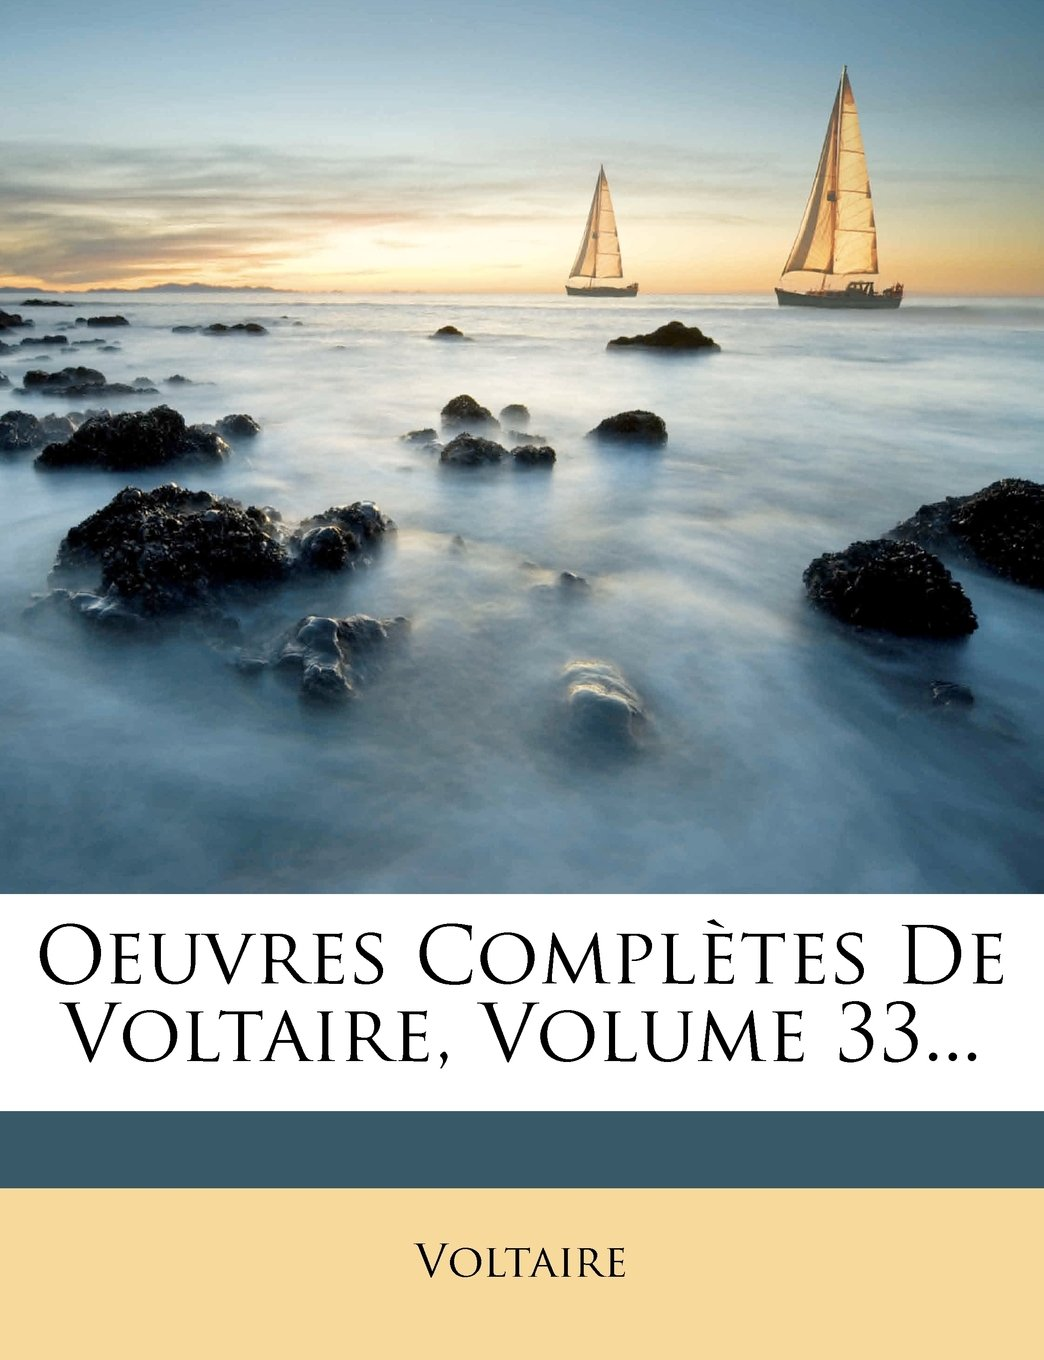 Download Oeuvres Completes de Voltaire, Volume 33... (French Edition) PDF ePub fb2 ebook